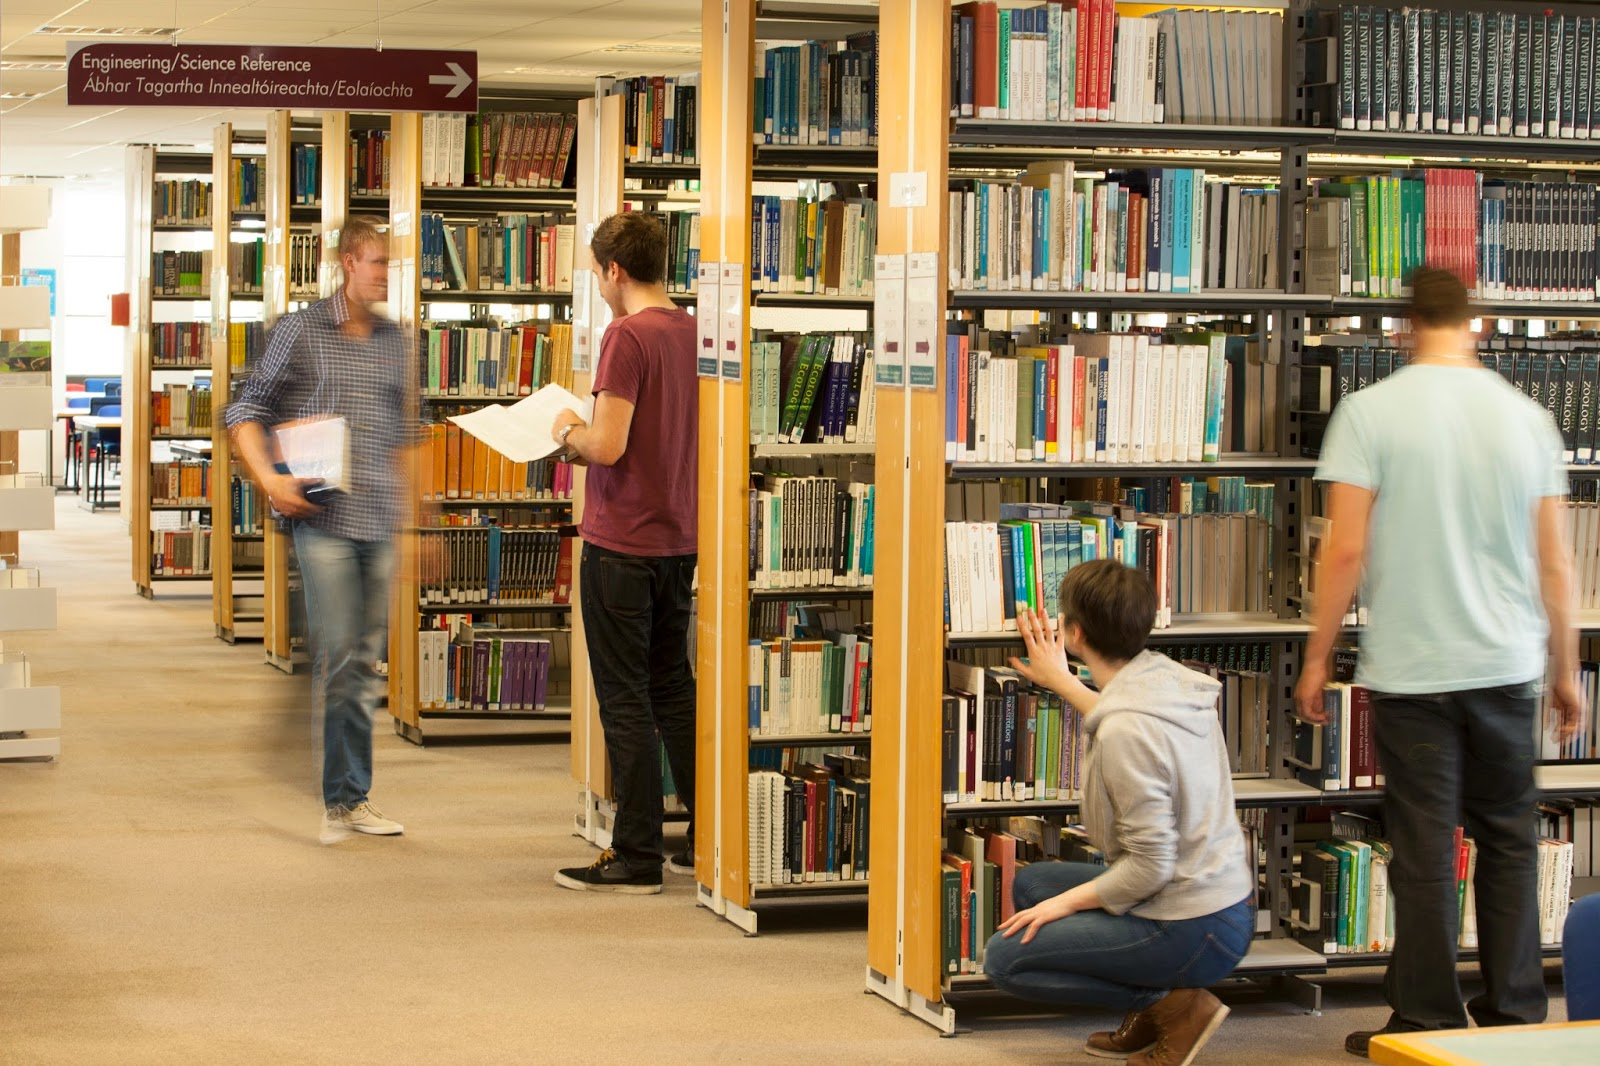 finding the thesis of a book The largest collection of electronic theses and dissertations available worldwide, proquest dissertations & theses global includes 4 million works from more than 3,000 universities, and adds more than 130,000 works annually.